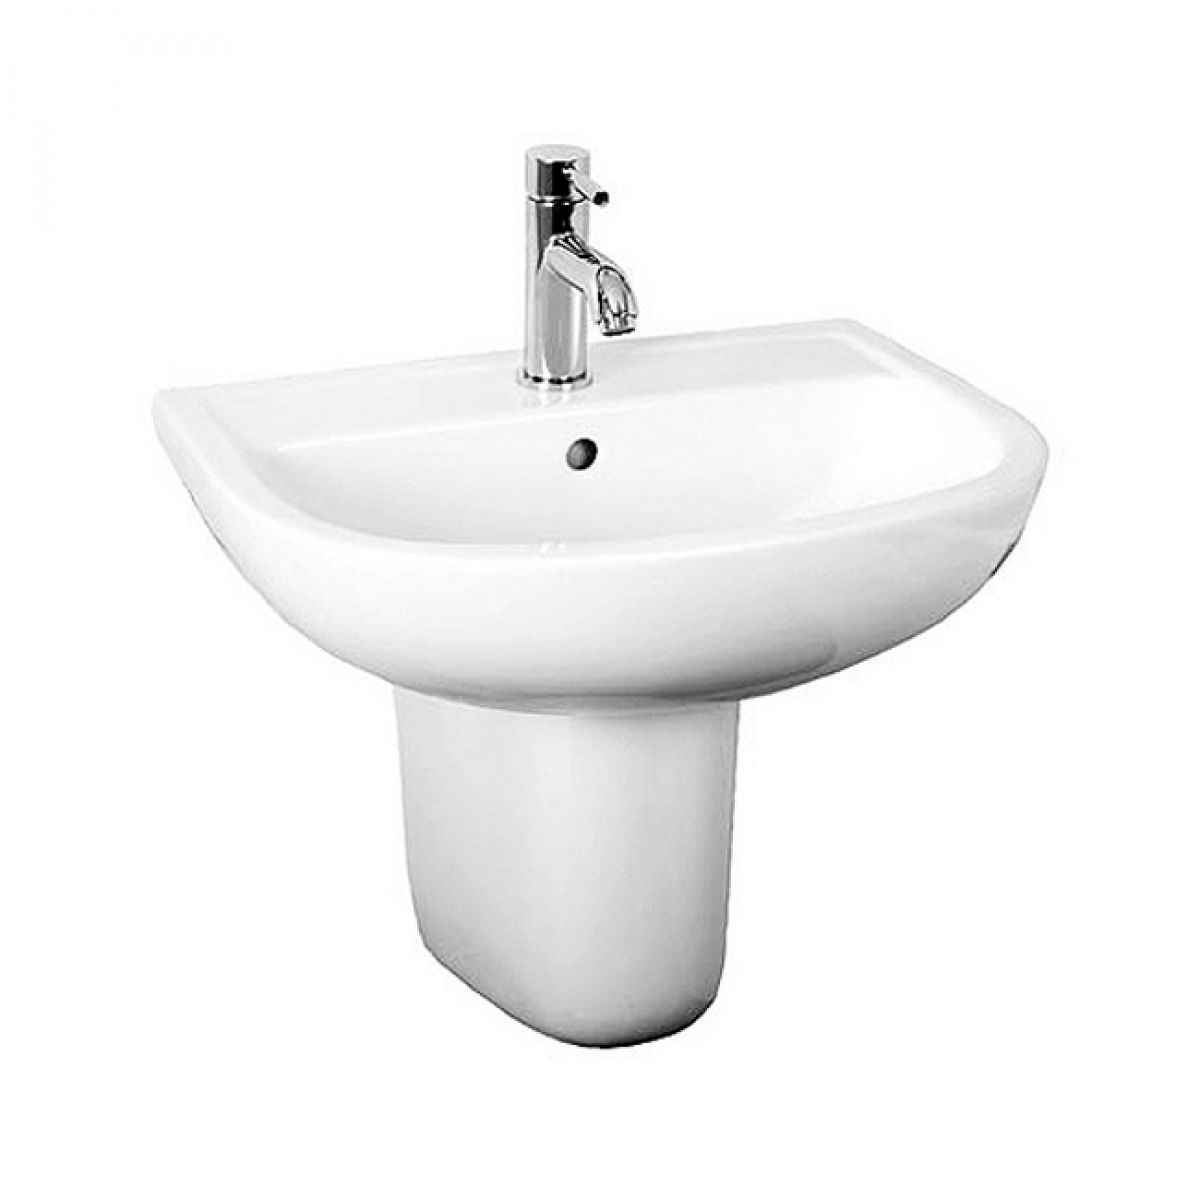 Rak Compact Wash Basin 550mm Uk Bathrooms